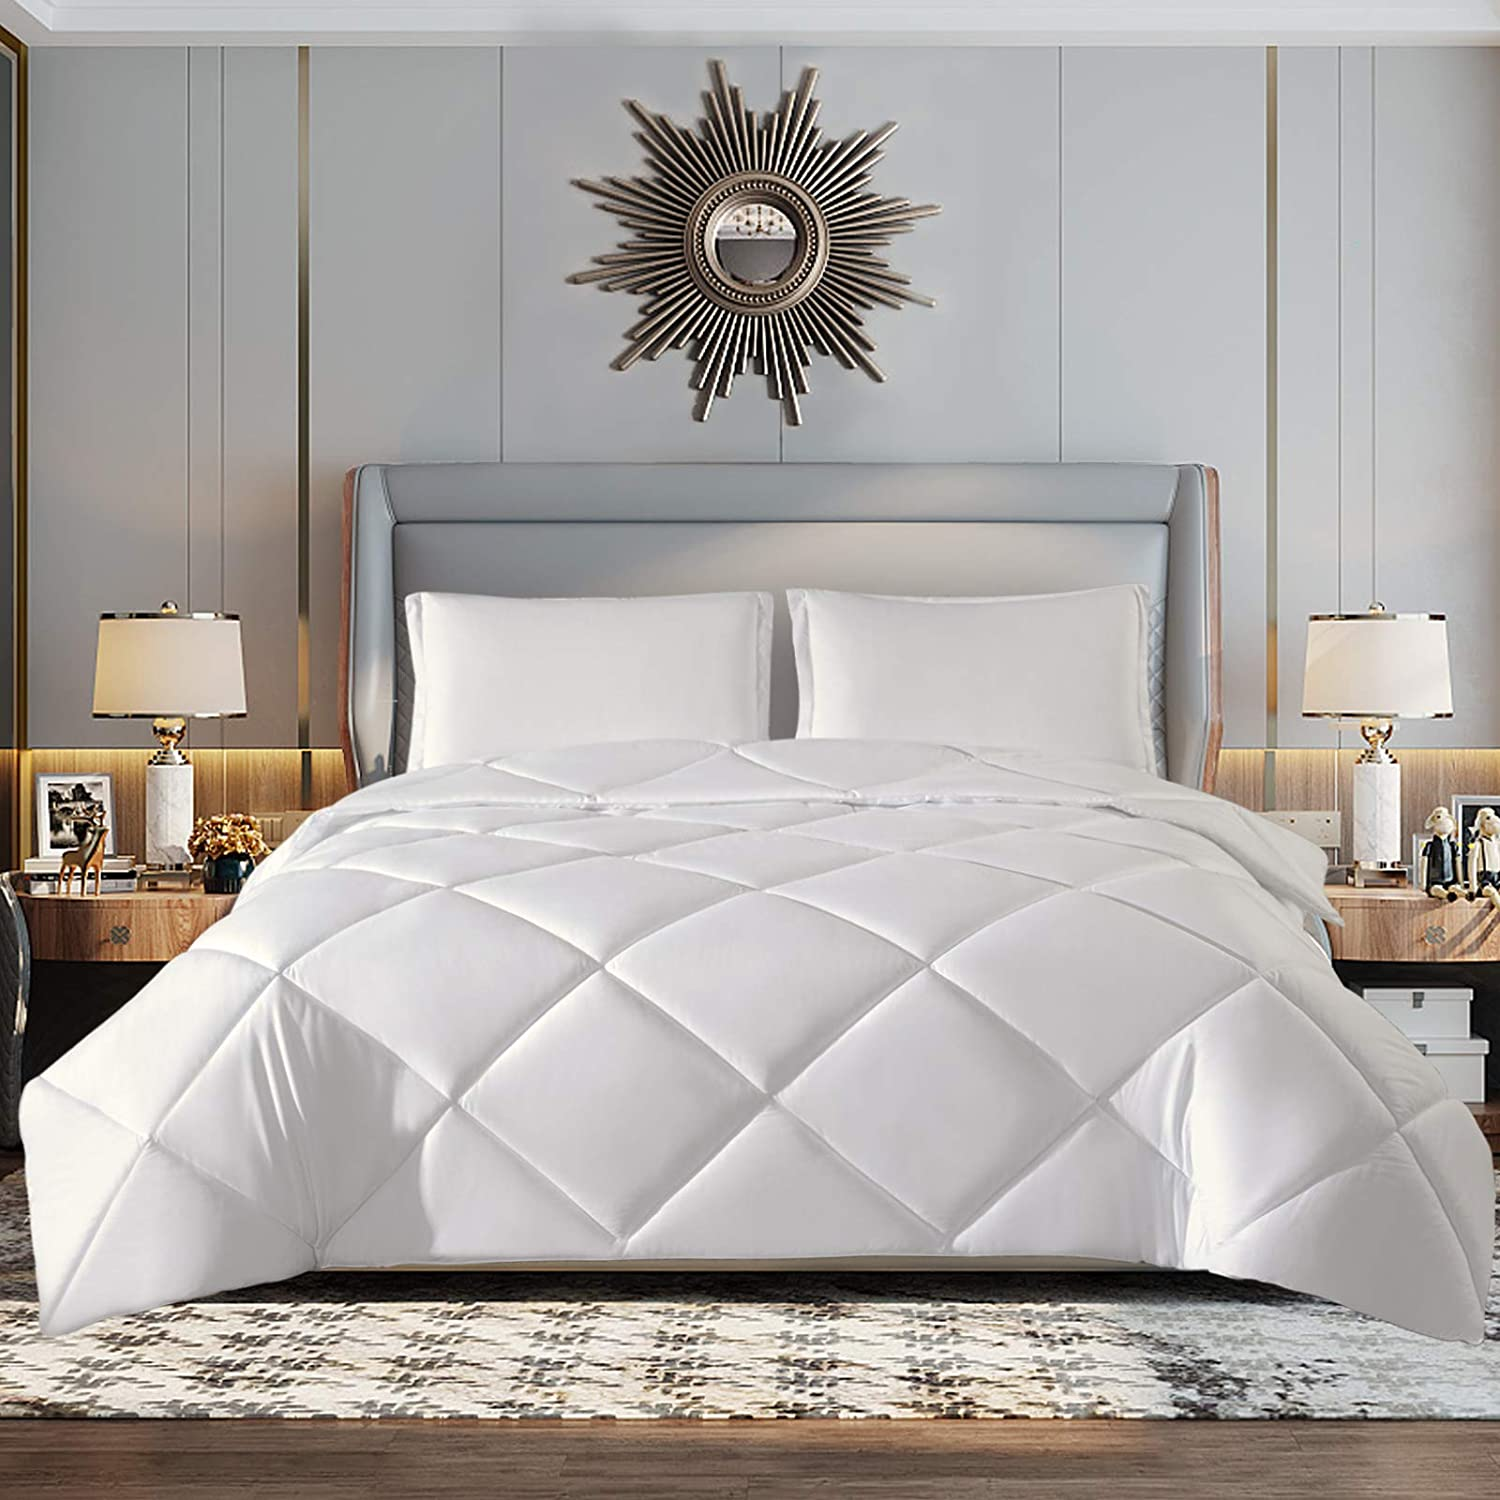 TOPLUXE Twin Comforter Sets, 2 Piece Bedding Comforter Set Twin Size, All Season Down Alternative Comforter with 1 Pillow Sham - Ultra Soft Microfiber 1800 Series Hypoallergenic (Twin, White)